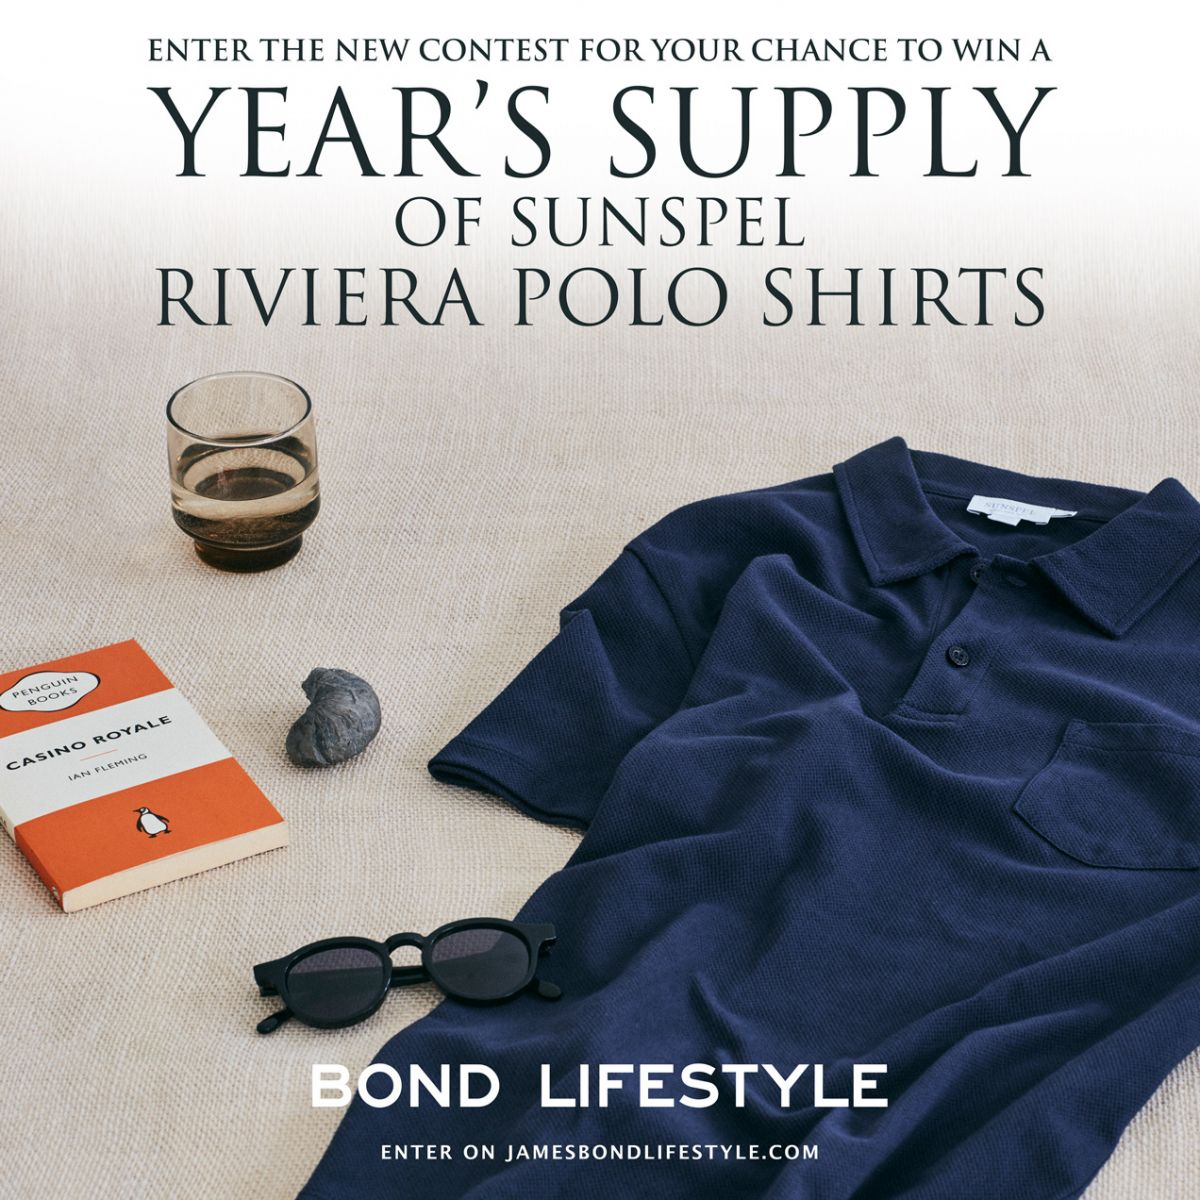 win sunspel year supply polo shirts